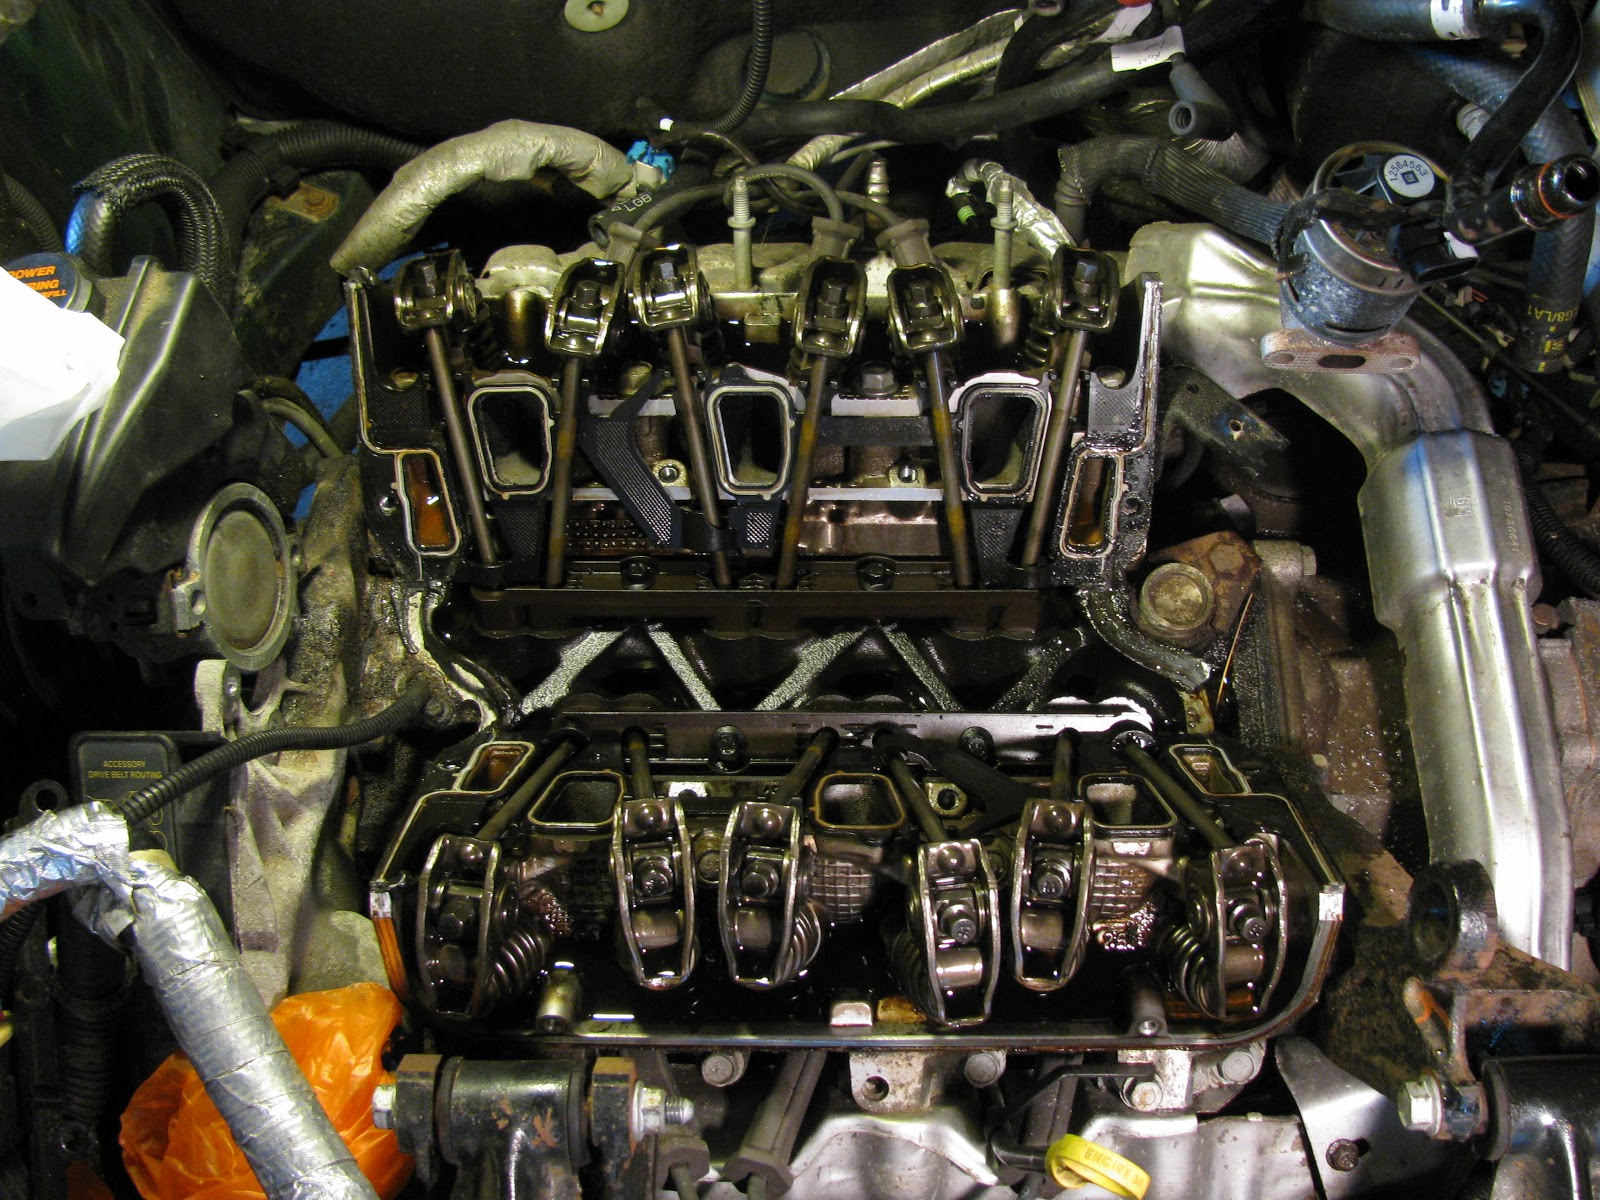 medium resolution of the original mechanic 3 1l engine gm replacing intake manifold rh originalmechanic com 3400 v6 engine